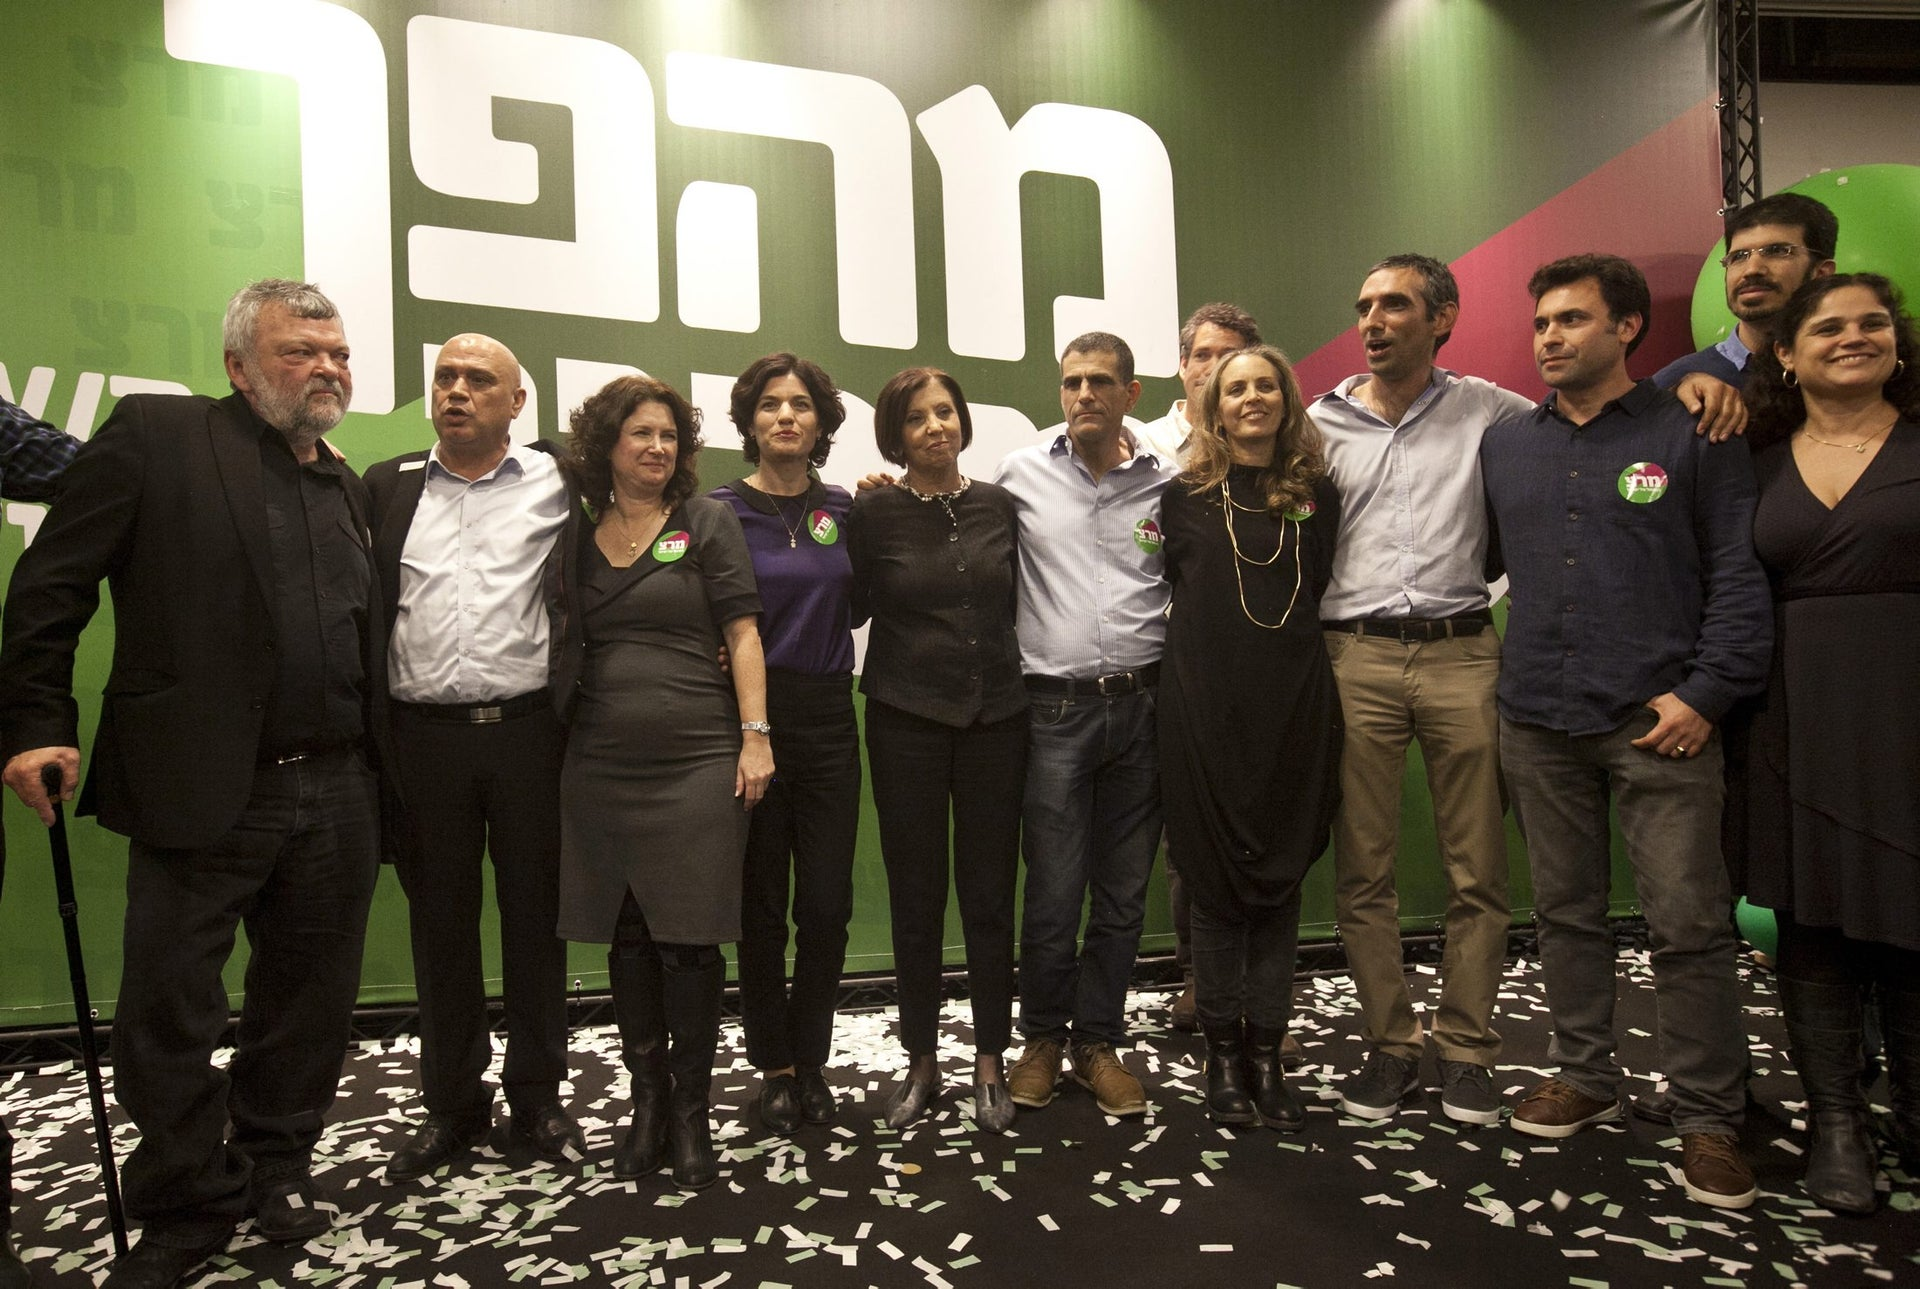 The Meretz party prior to the 2015 election.